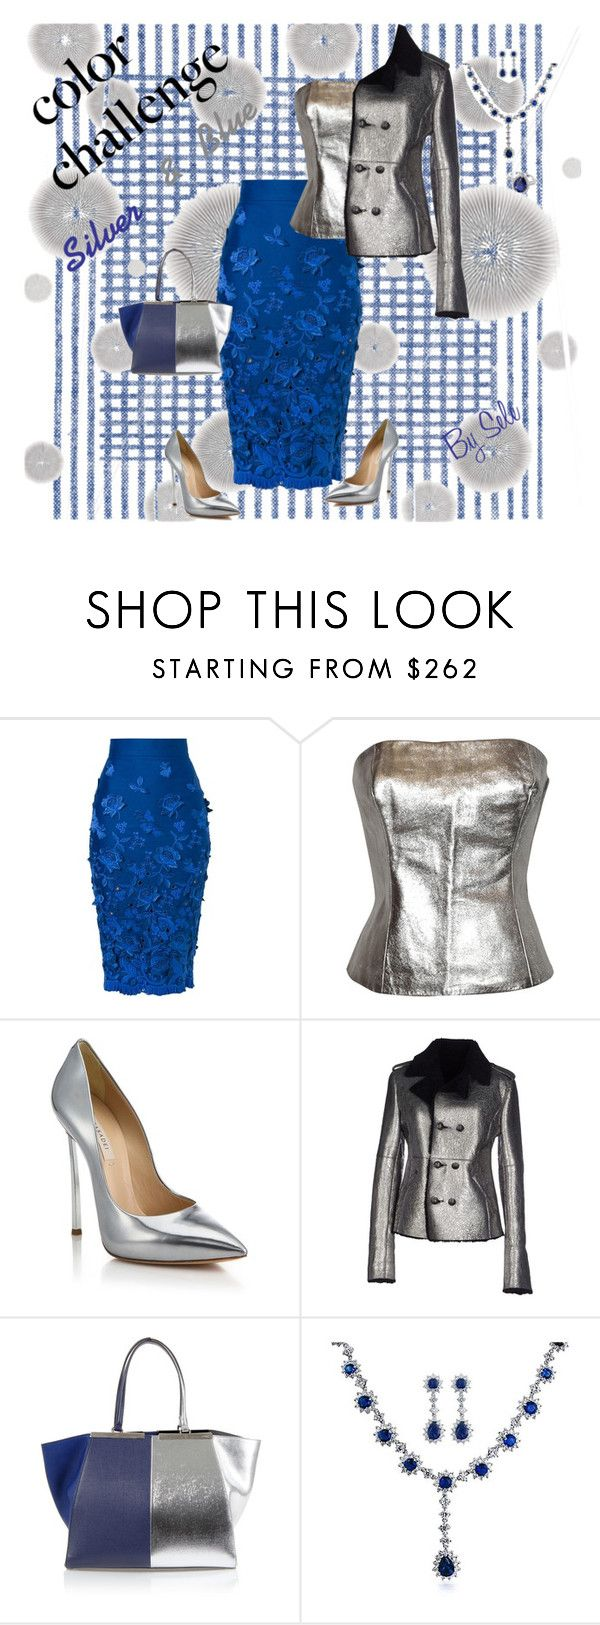 """""""Color Change : Silver & Blue"""" by selene-cinzia ❤ liked on Polyvore featuring Komar, Ermanno Scervino, Casadei, Each X Other, Fendi, Bling Jewelry and blueandsilver"""